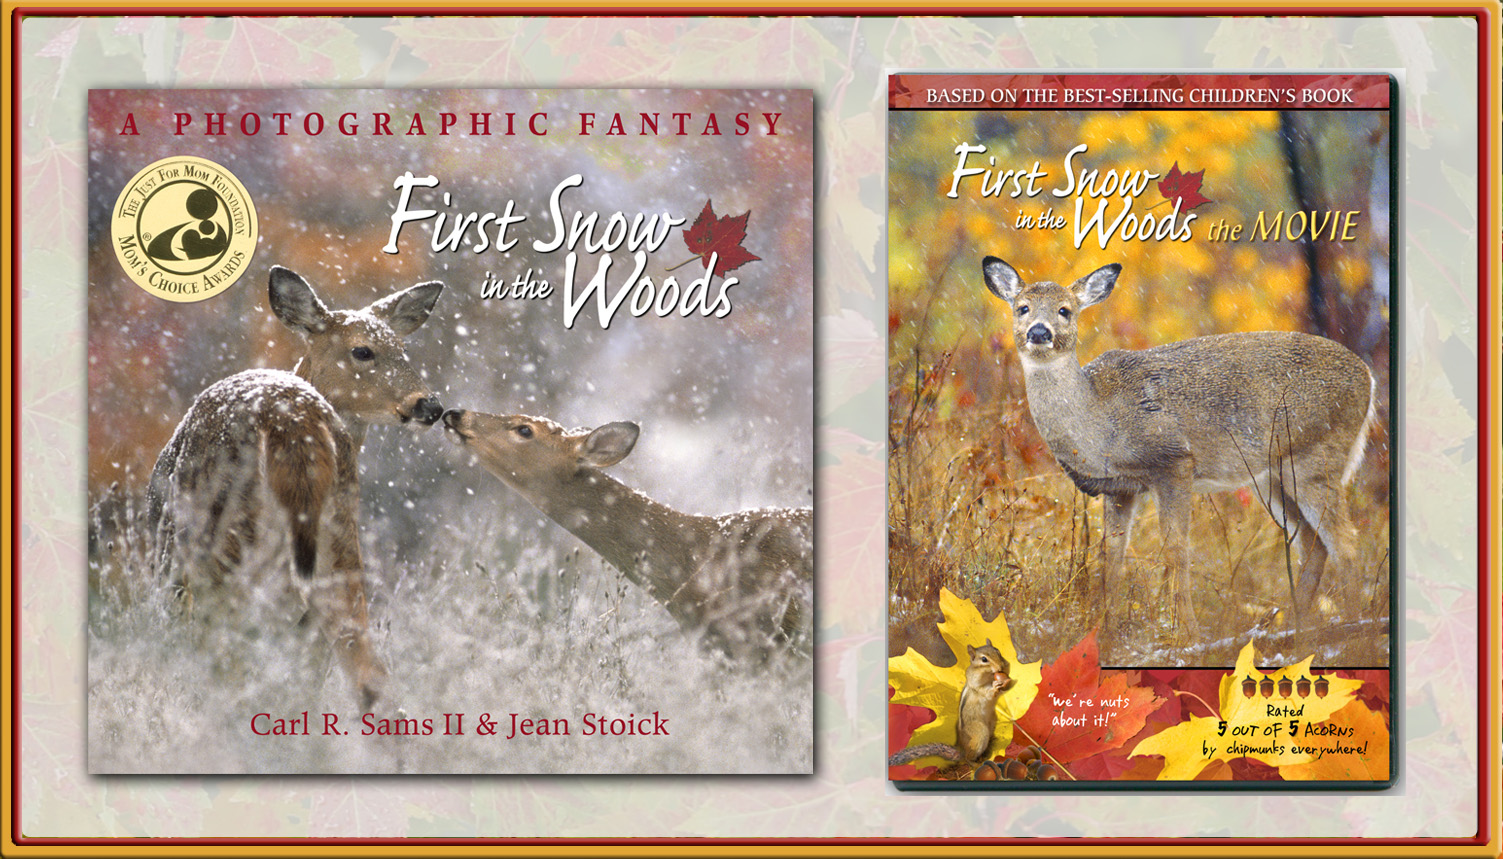 First Snow in the Woods, the book and DVD